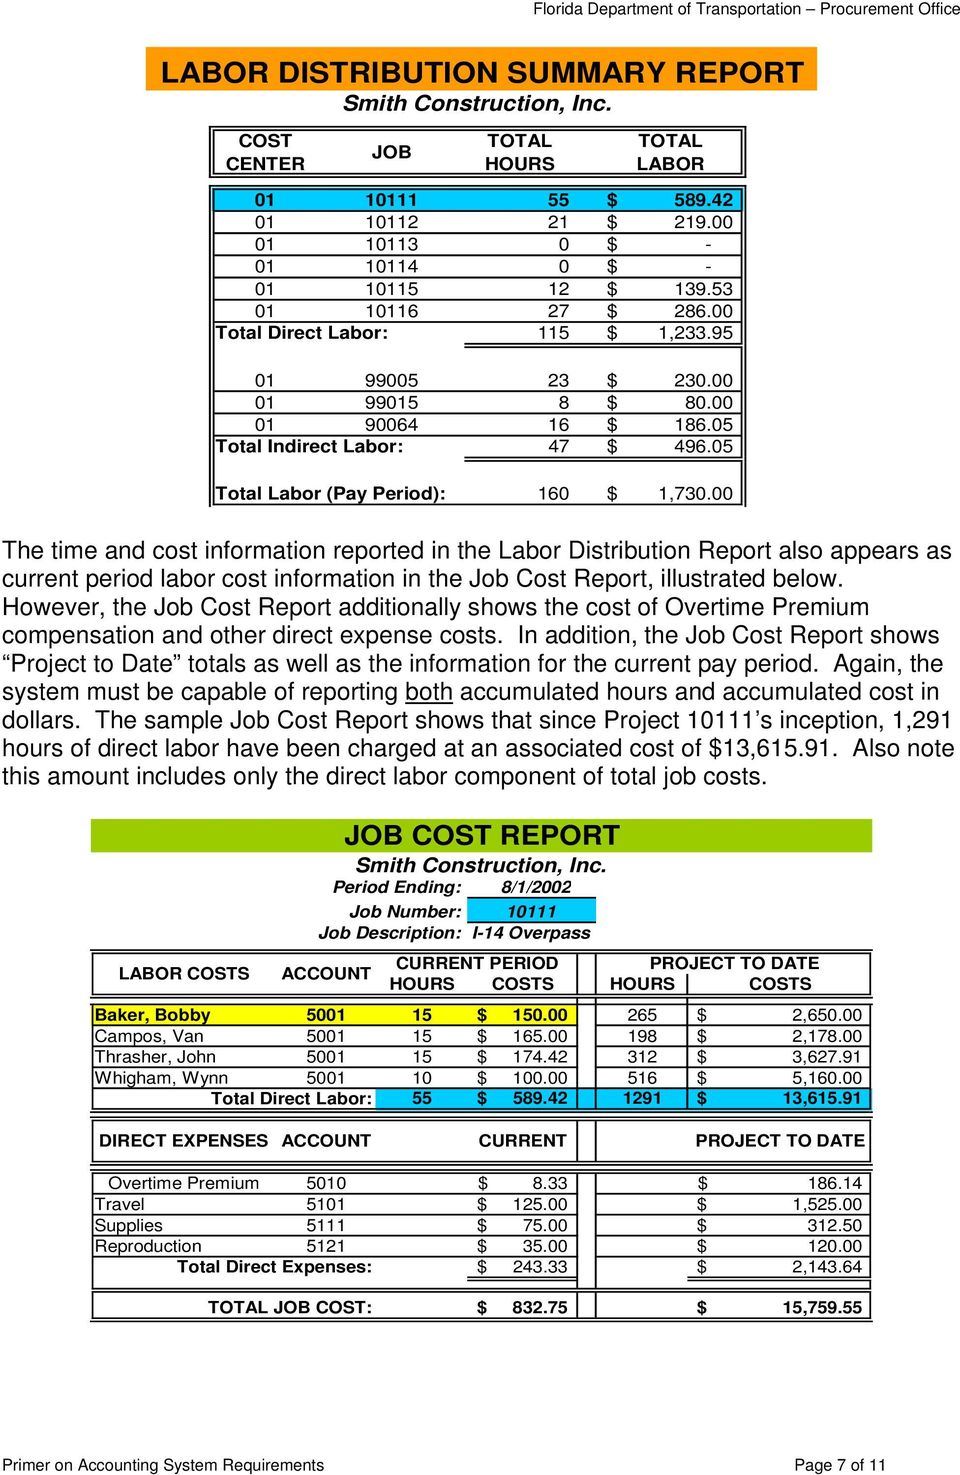 00 The time and cost information reported in the Labor Distribution Report also appears as current period labor cost information in the Job Cost Report, illustrated below.